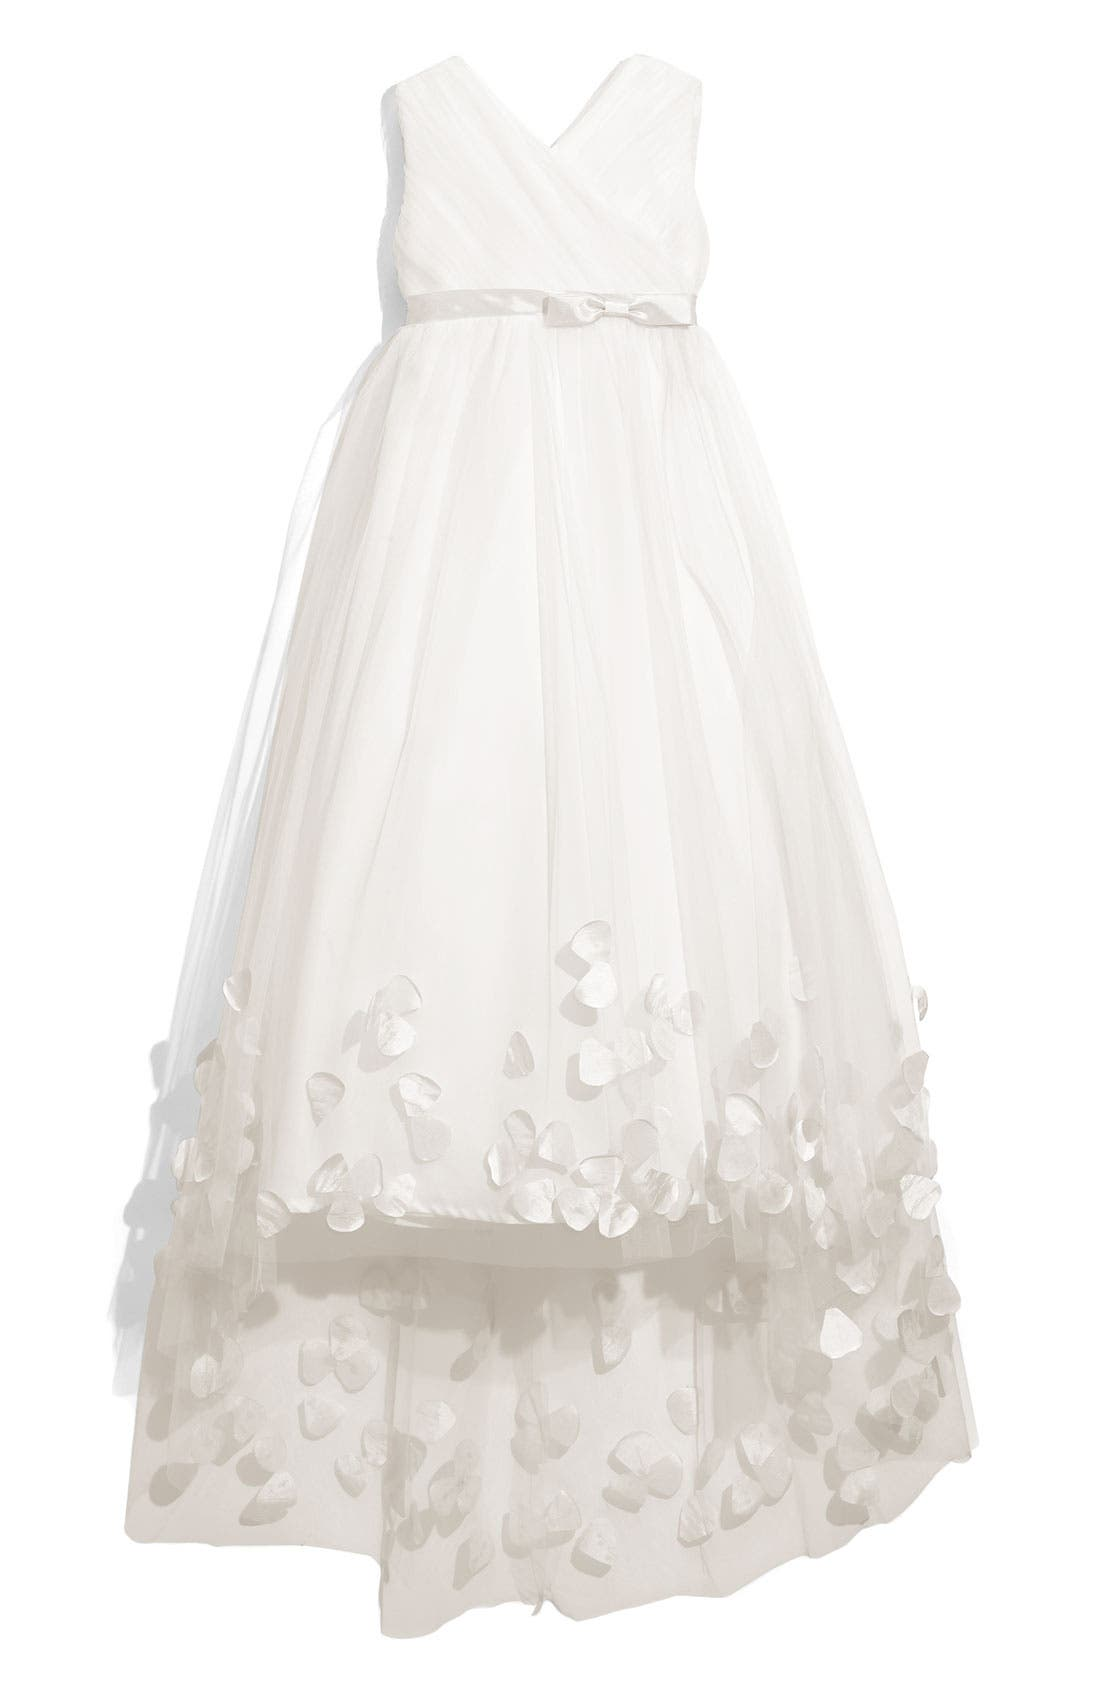 Alternate Image 1 Selected - Joan Calabrese for Mon Cheri Tulle & Taffeta Floor Length Dress (Little Girls & Big Girls)